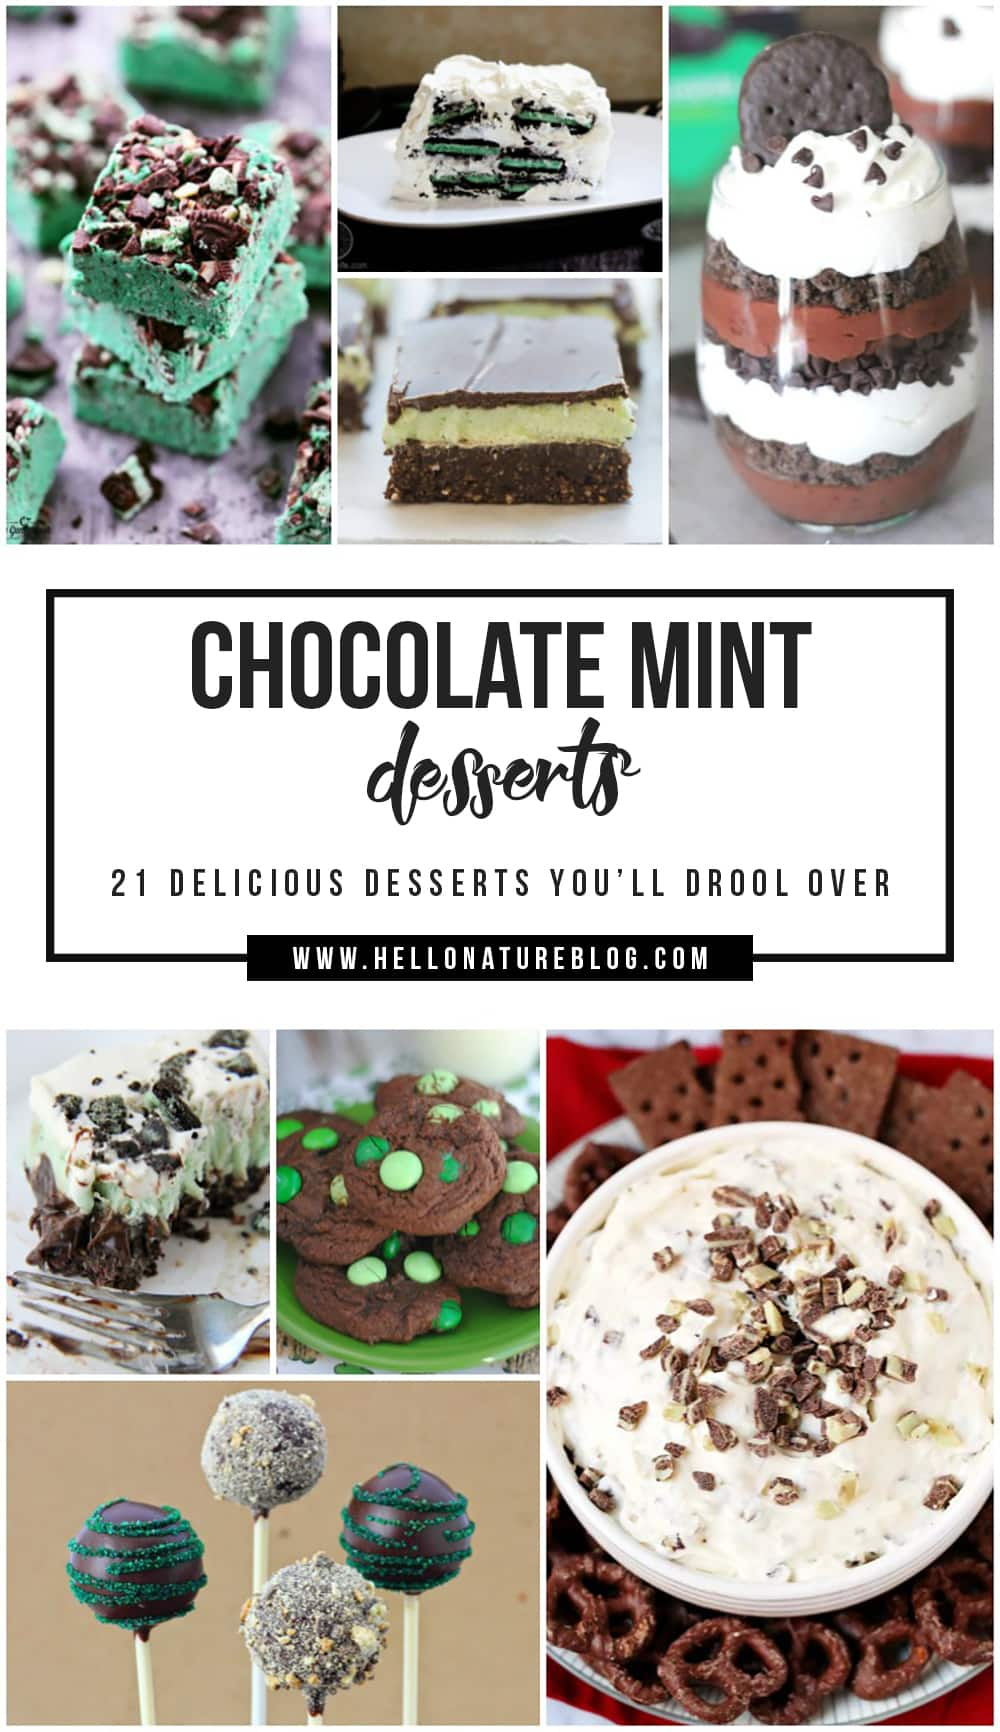 Assortment of Chocolate Mint Desserts